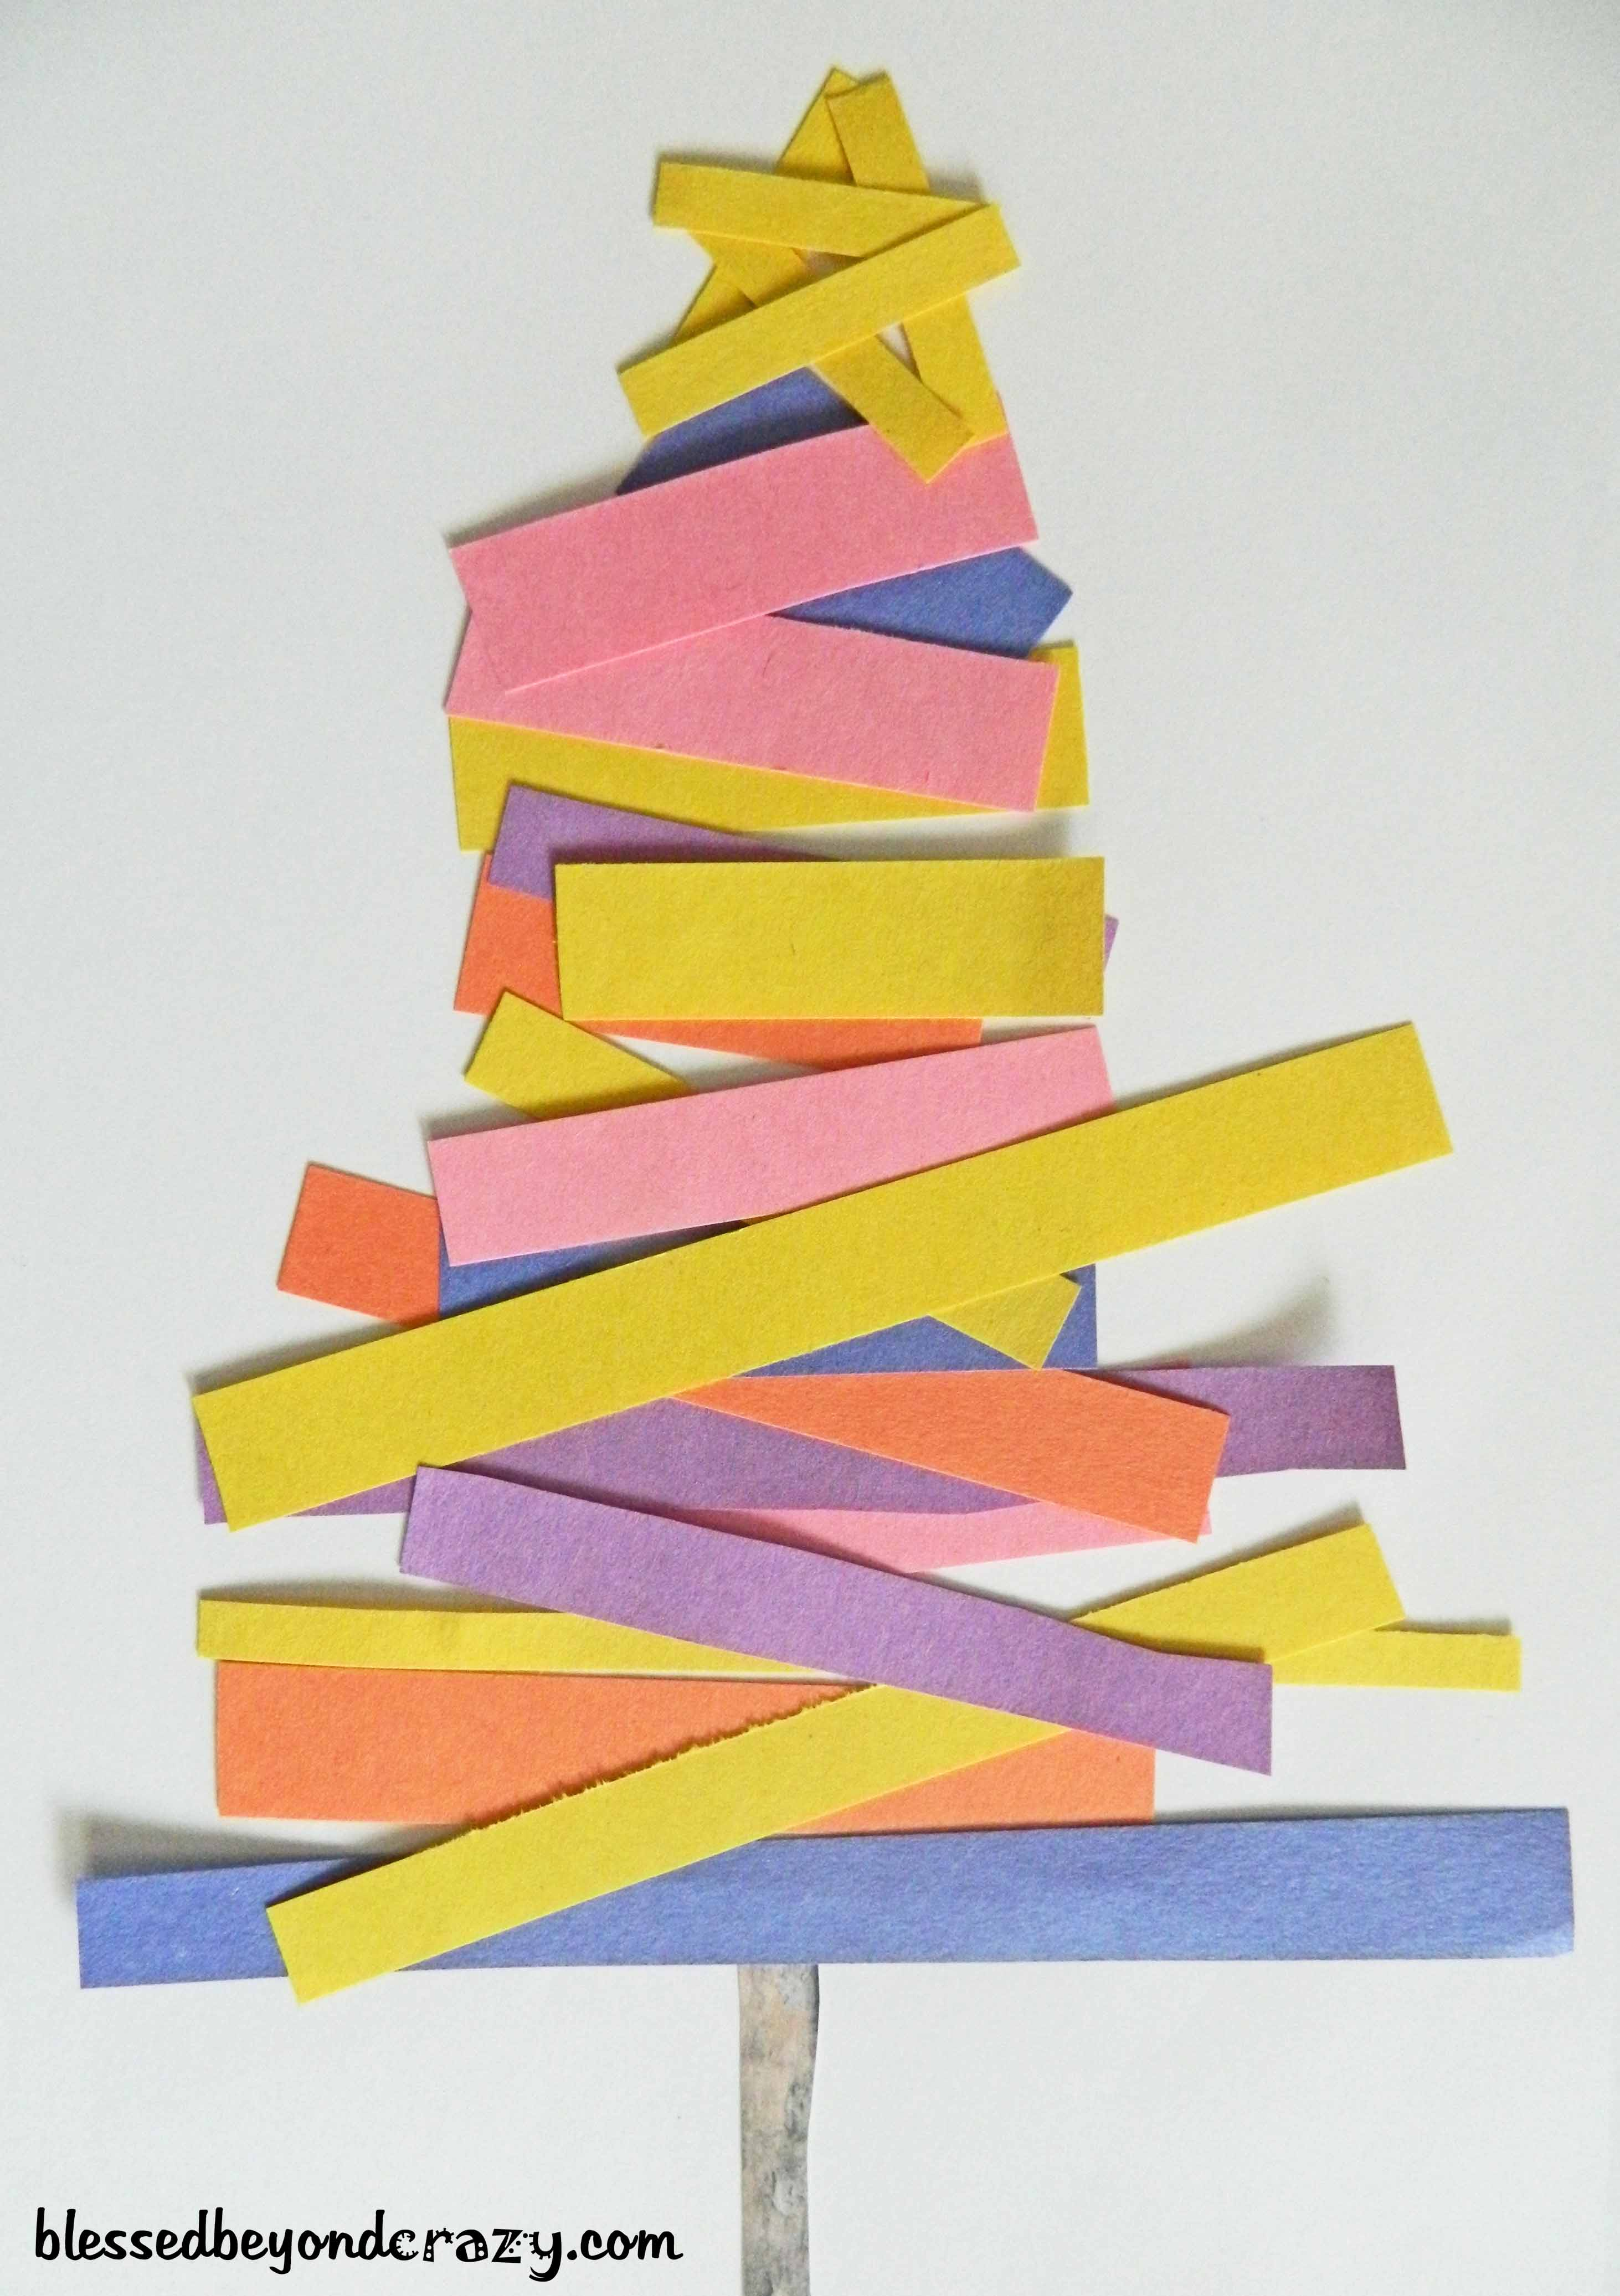 12 days of christmas crafts for kids day 7 for Holiday crafts with construction paper